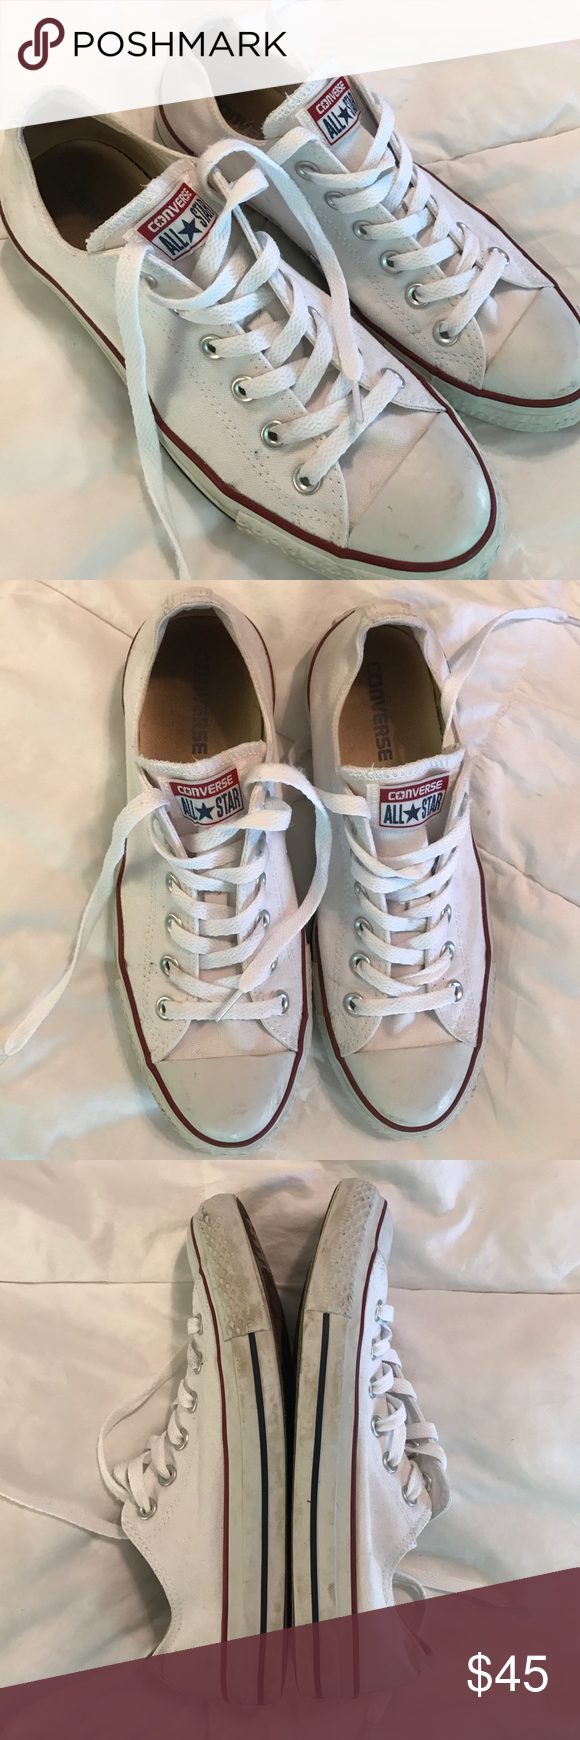 cafaa07b9f352e White Converse size 9 💎 worn a few times ⭐ great condition very clean ⚖  price negotiable. no trades. 📬 quick shipping ⚜ top 10% seller Converse ...